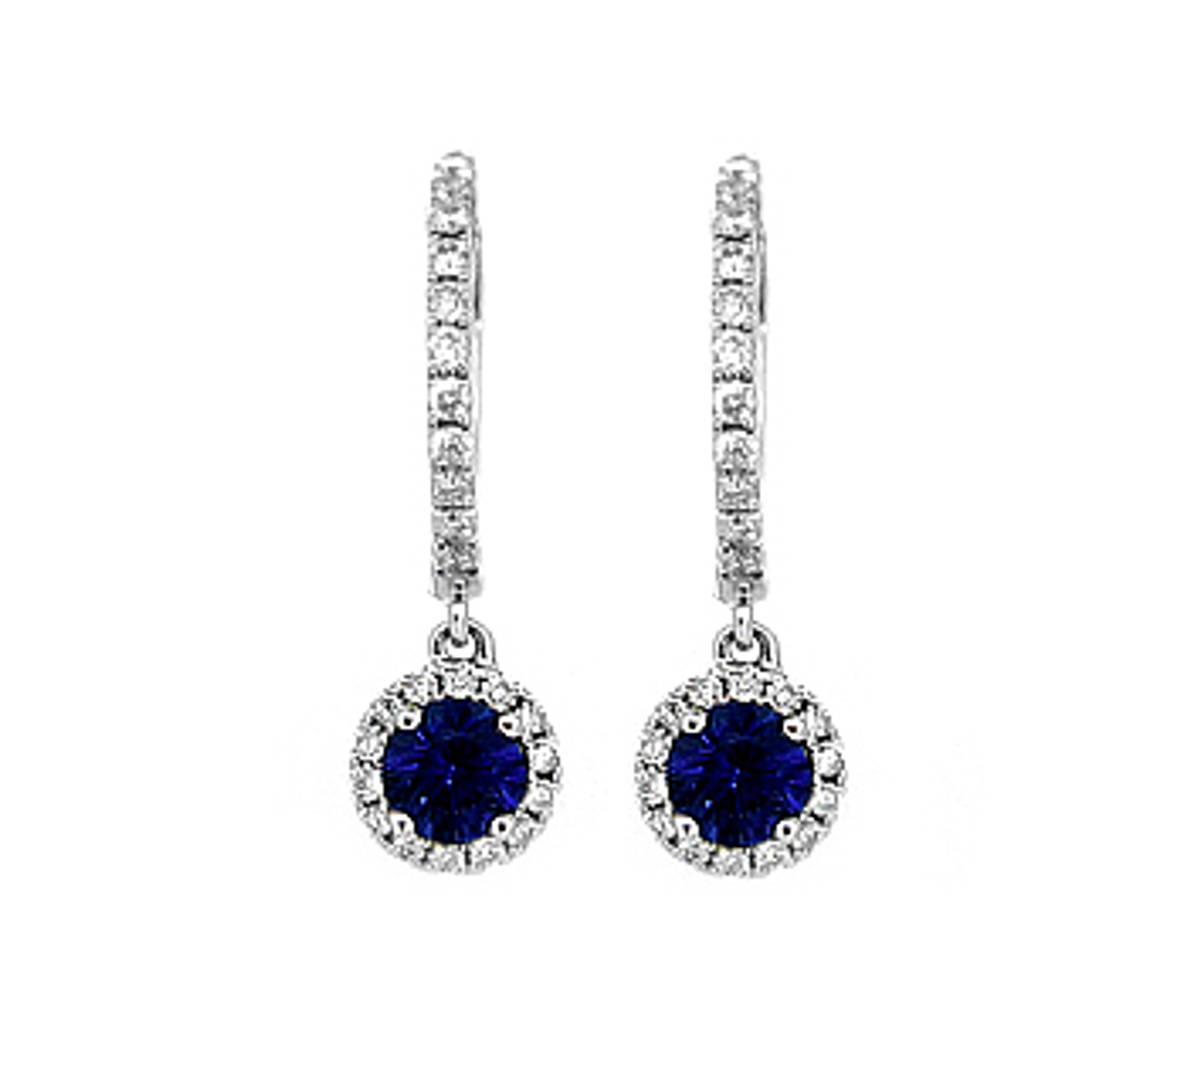 Sapphire and diamond hoop earrings in 18 ct white gold